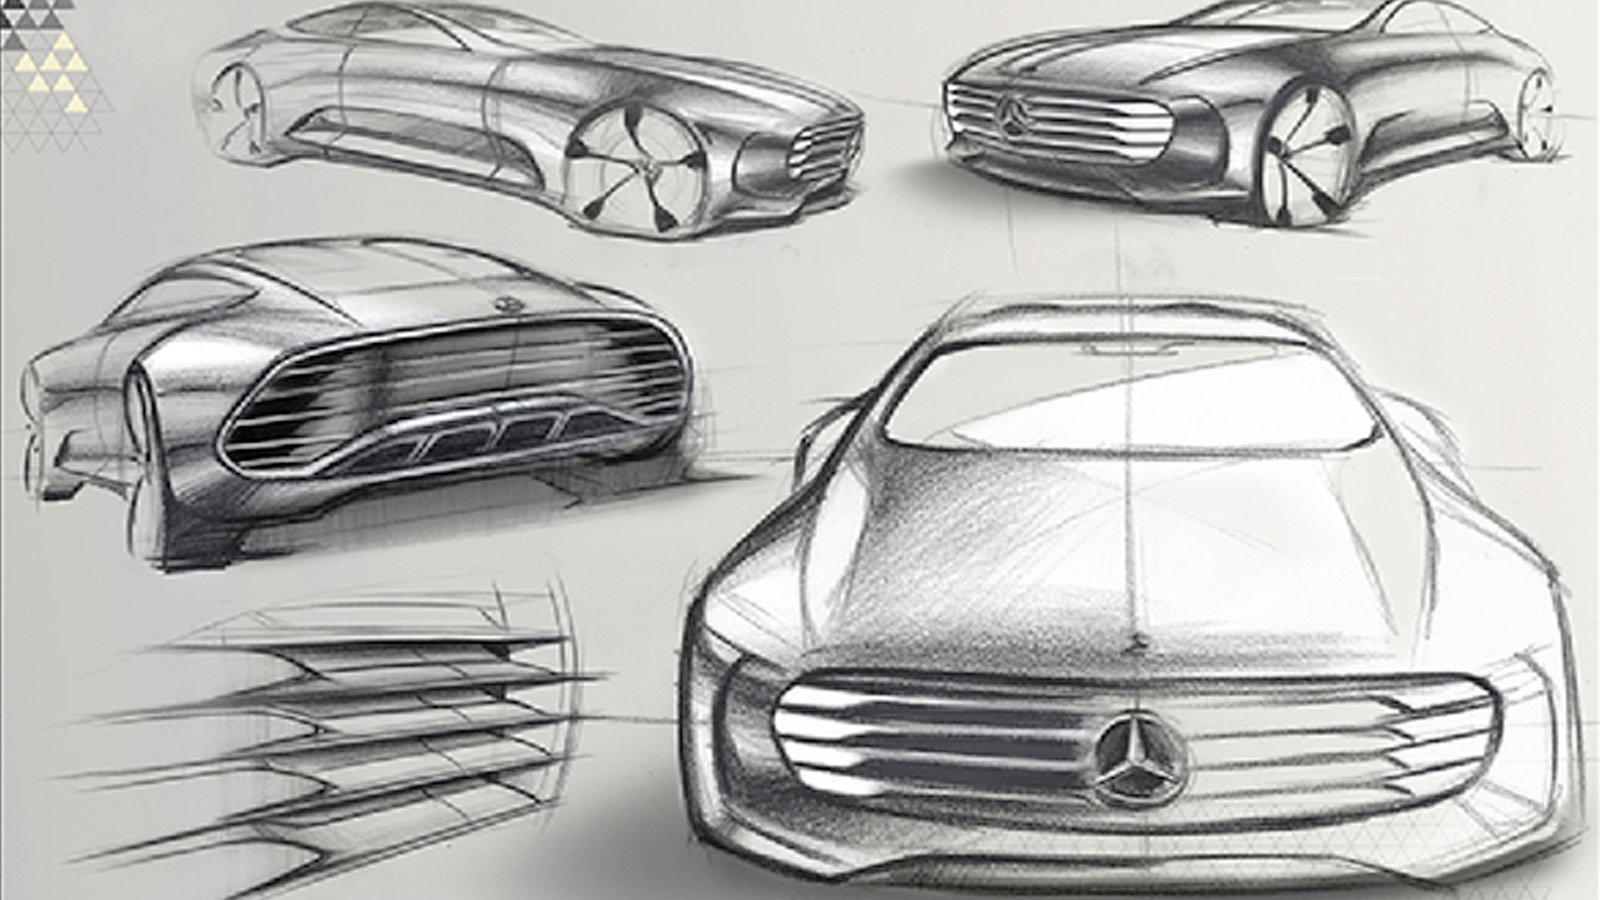 A Look at Mercedes-Benz's Sensual Purity Design Philosophy